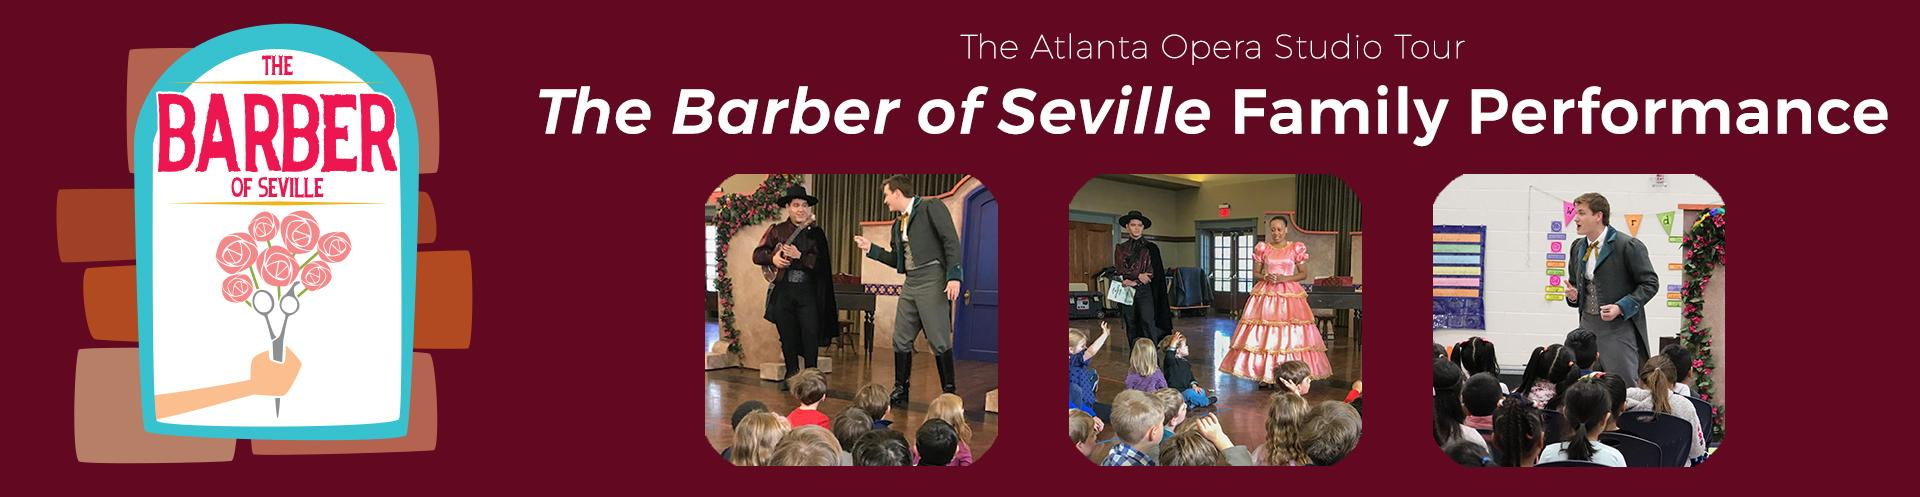 March 23: The Barber of Seville Family Performance